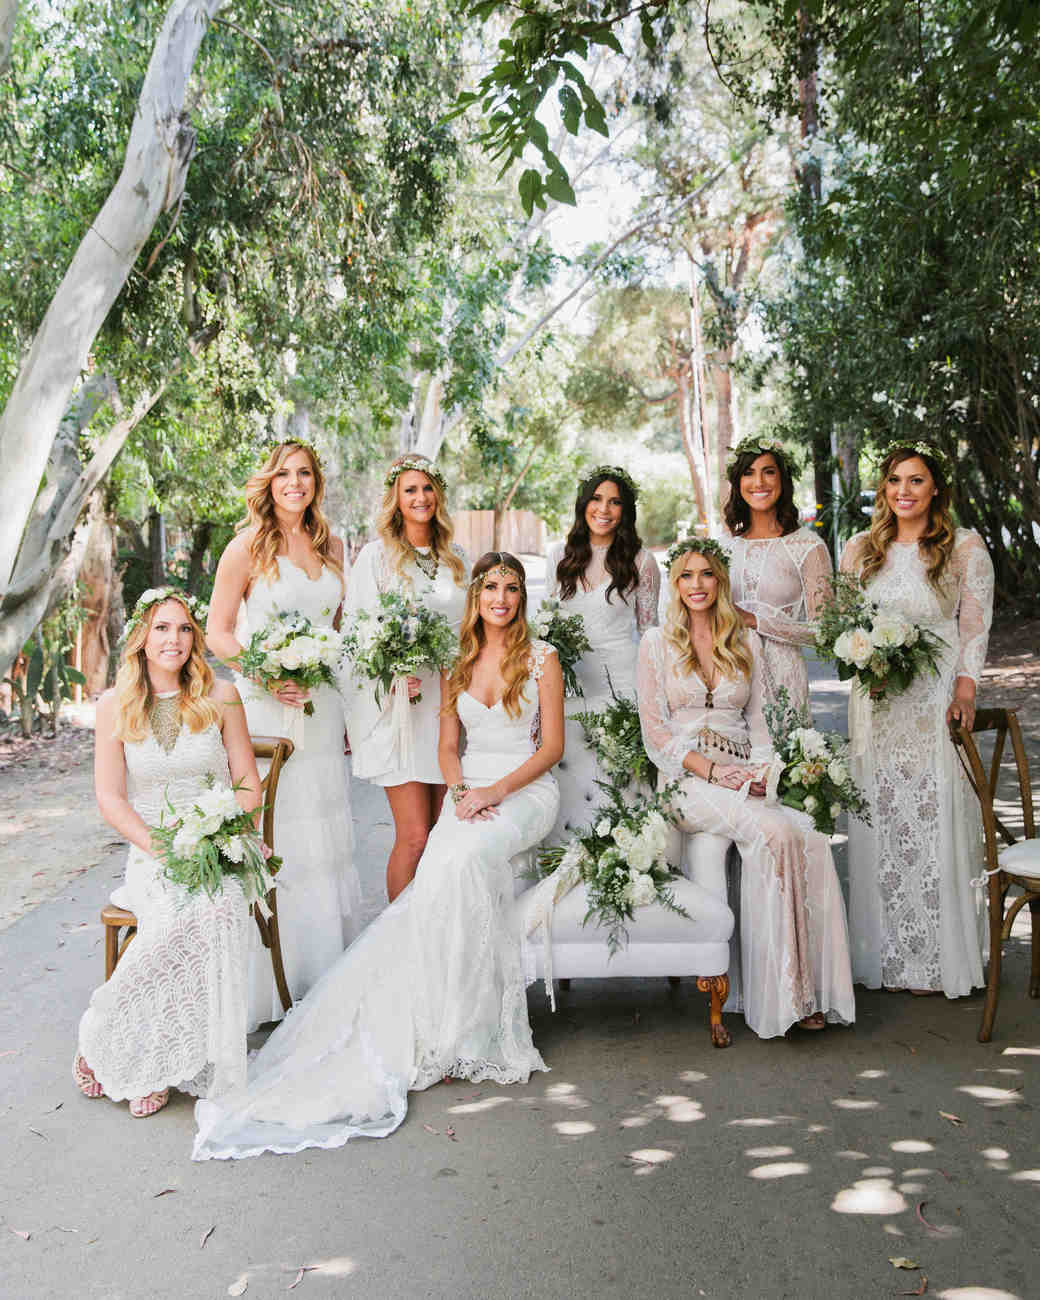 chic bridesmaids bohemian style gowns with flower crowns